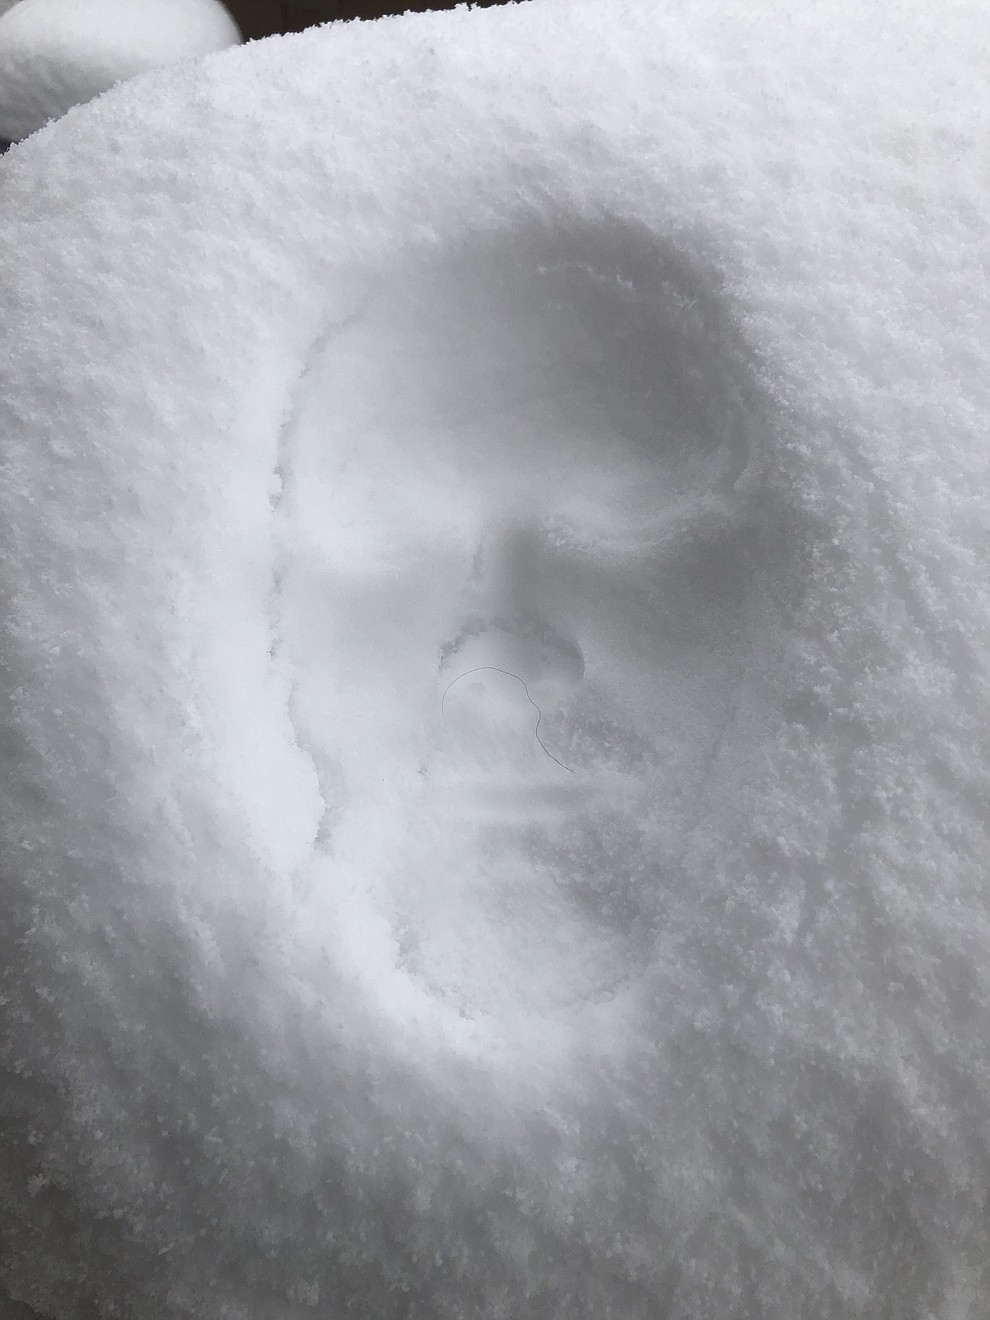 Johnny Schmidt's snow face on the grill (Kristen Purol)